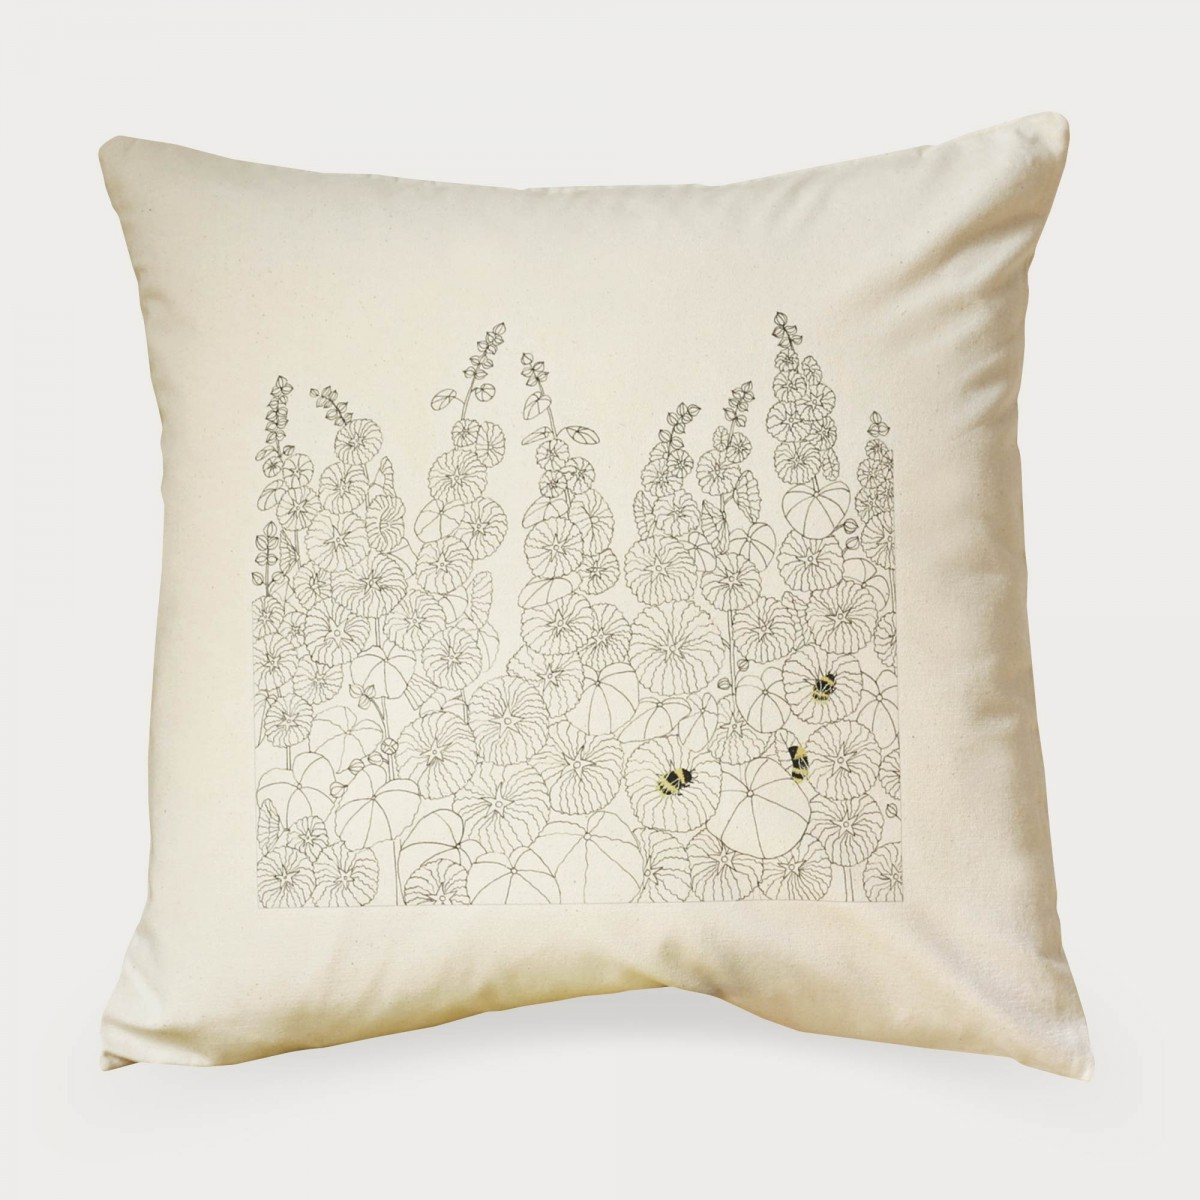 Hollyhocks And Bees Bee Bea Flower Floral Cushion Cover